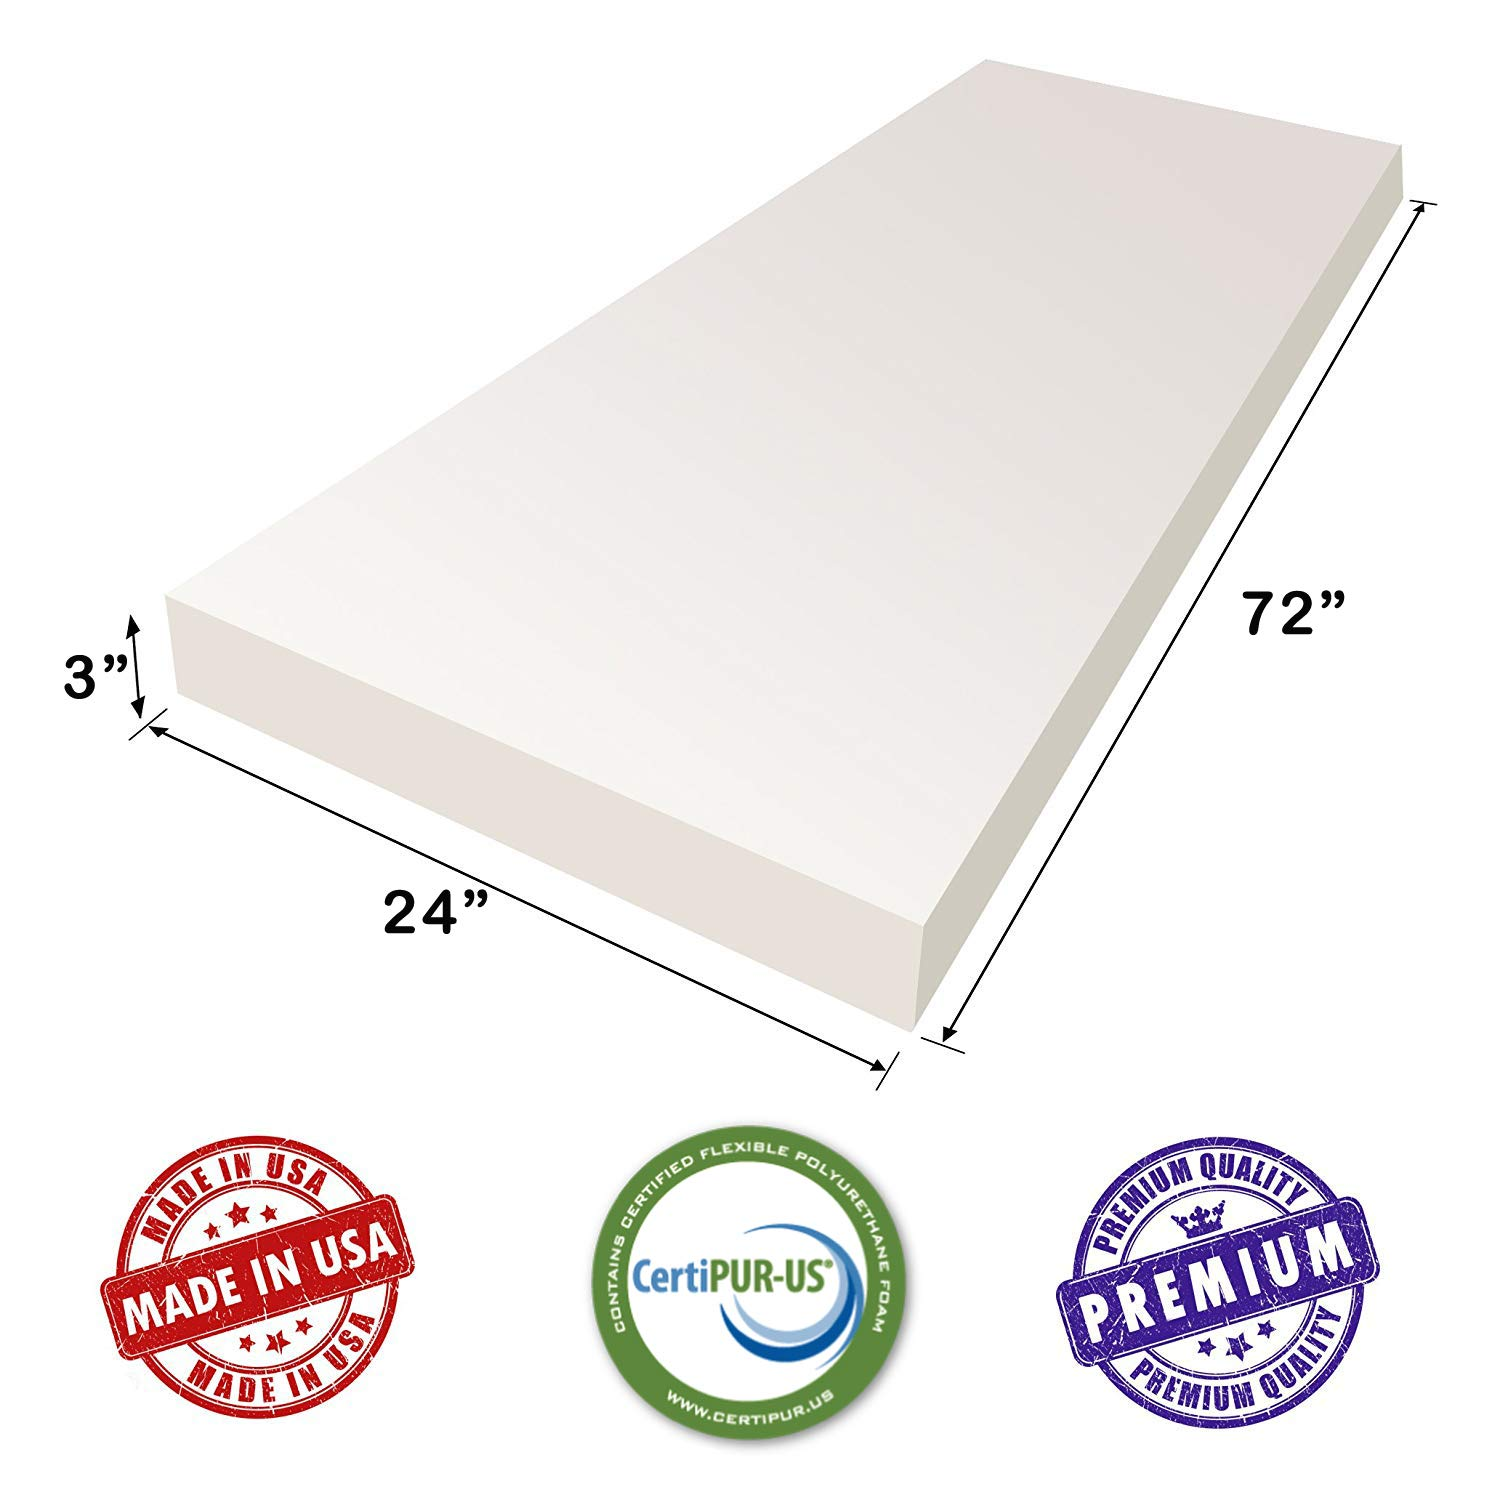 Firm GoTo Foam 4 Height x 30 Width x 96 Length 44ILD Upholstery Cushion Made in USA